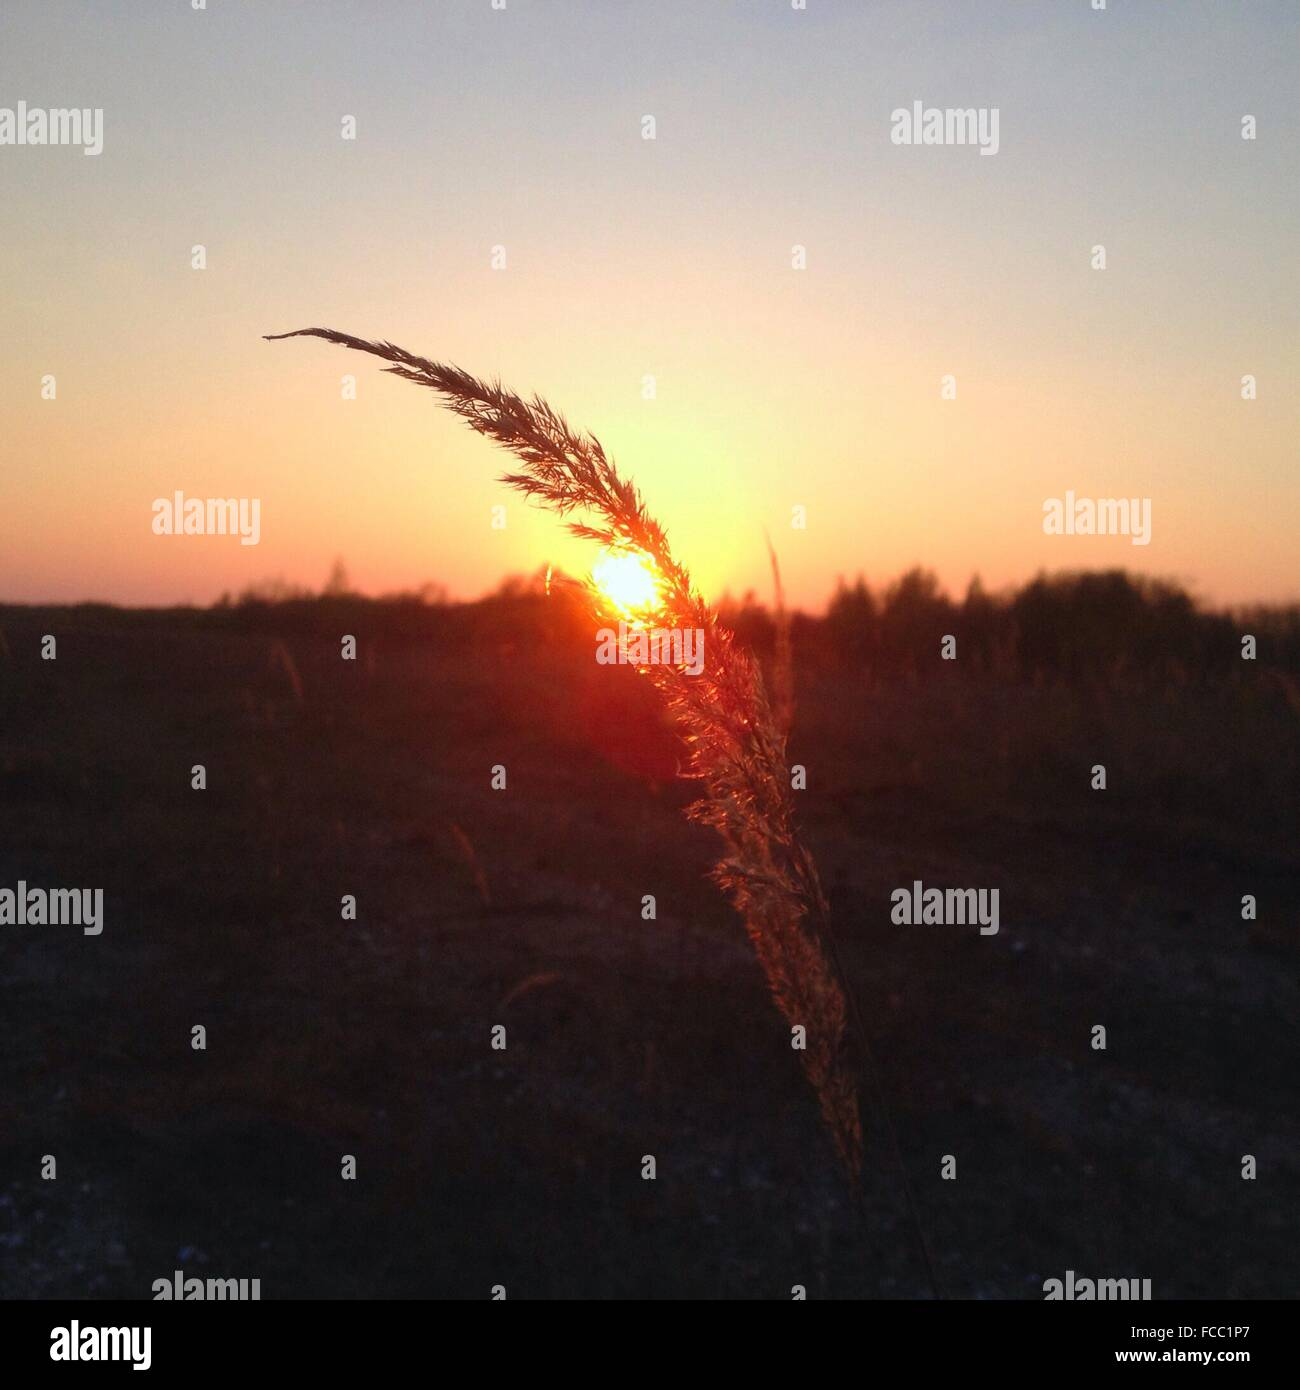 Close-Up Of Stalk In Field Against Sunset - Stock Image